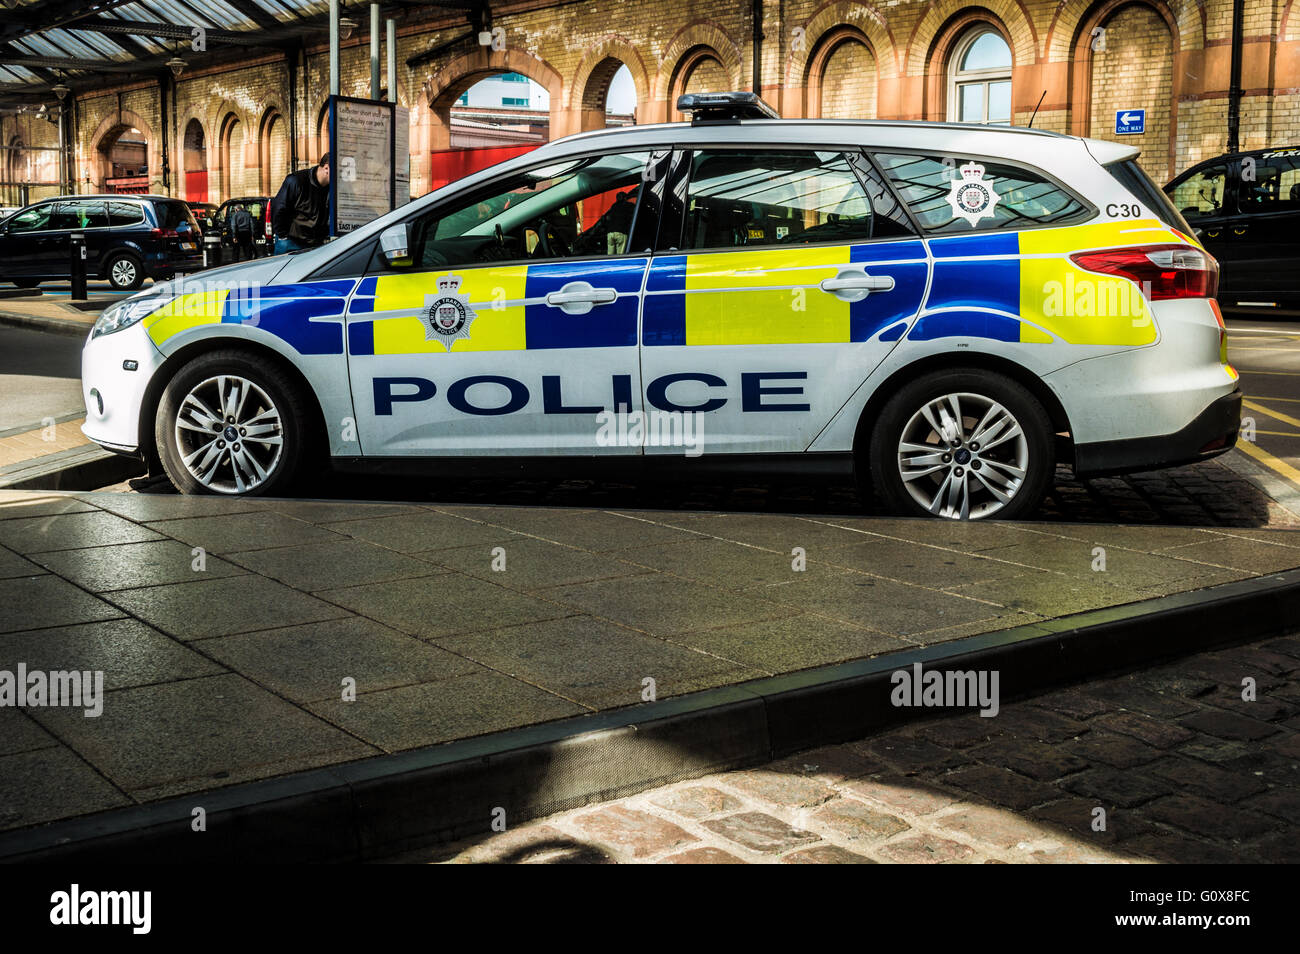 British Transport Police Vehicle at Leicester Station - Stock Image